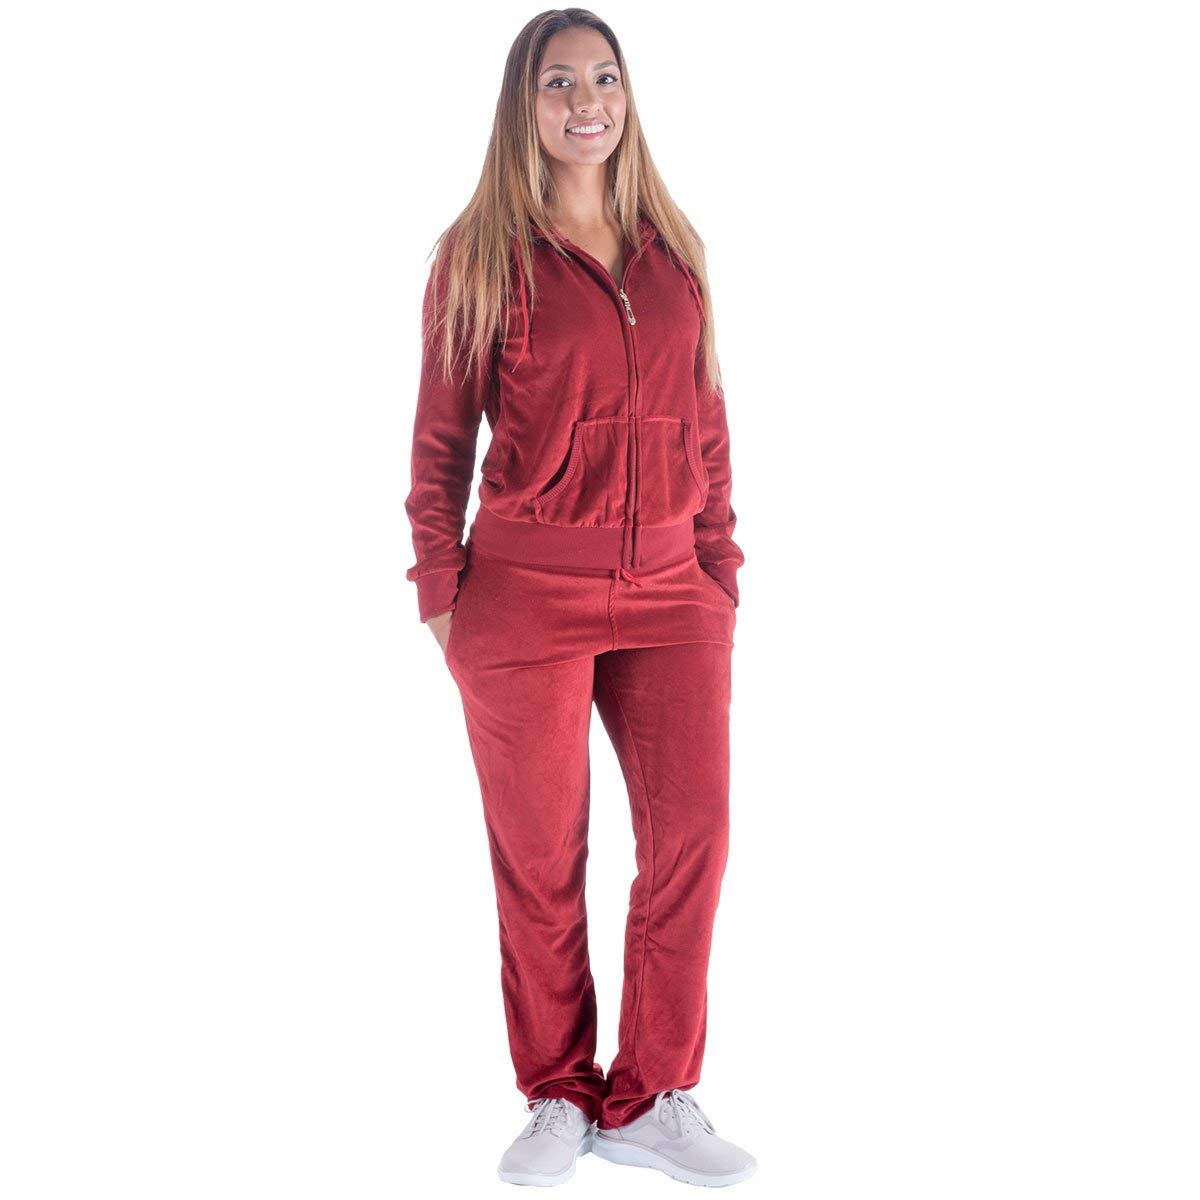 pick up official supplier hot-selling real Cheap Fila Velour Sweatsuit, find Fila Velour Sweatsuit ...